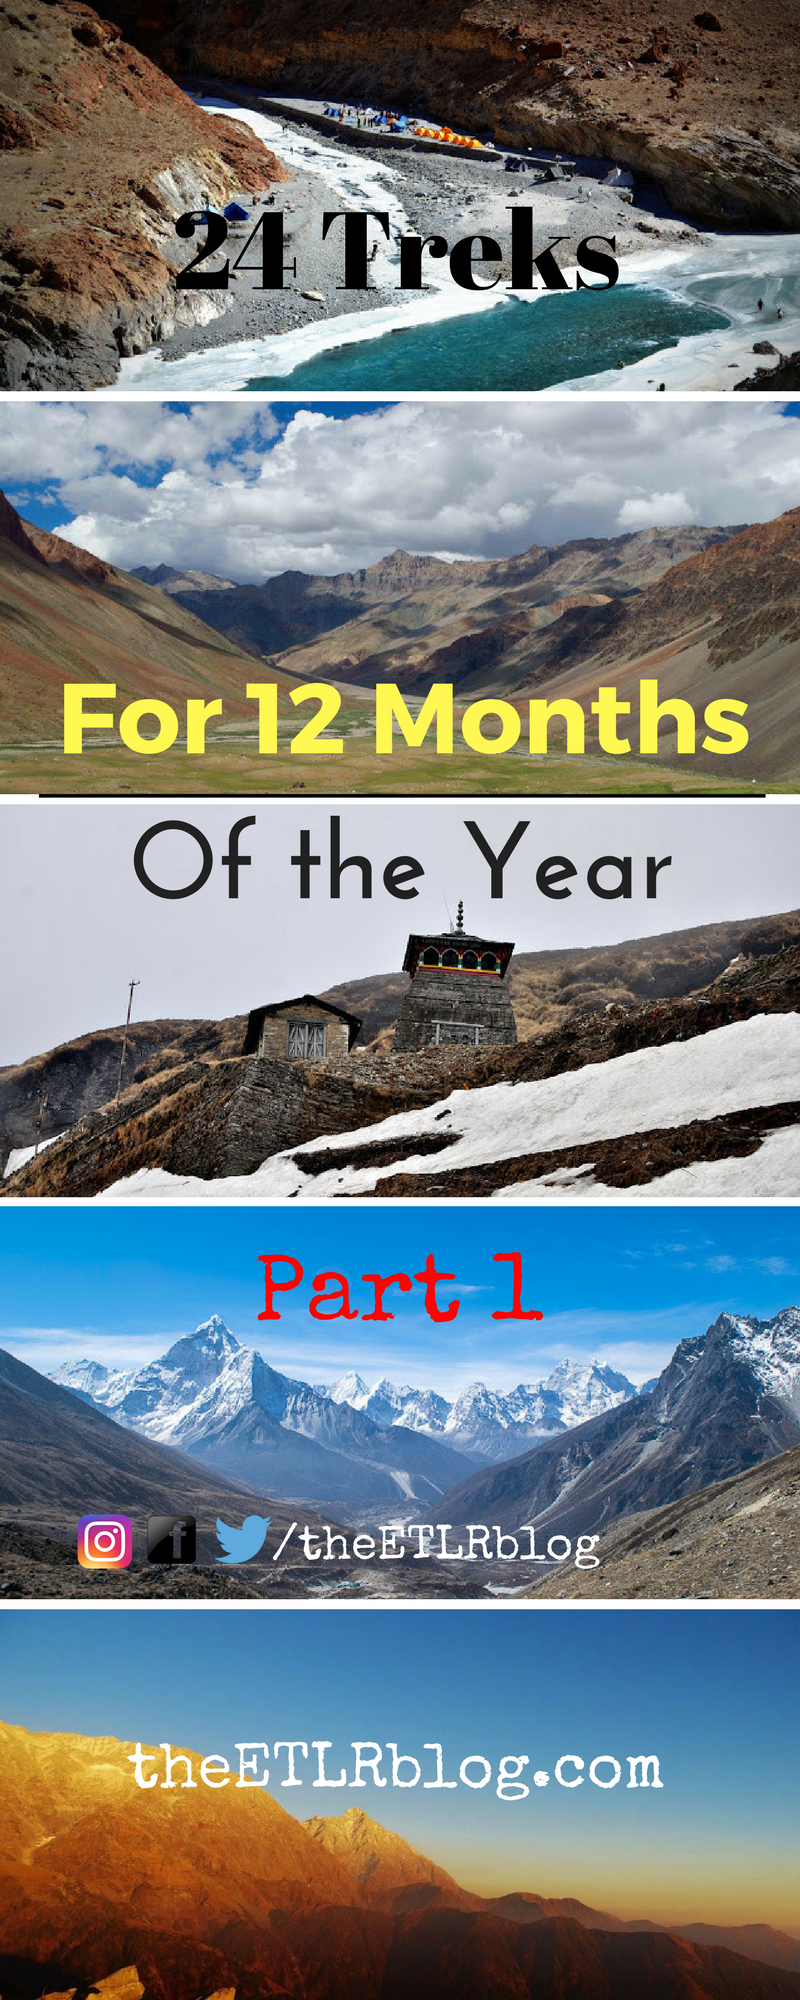 So which of the 24 treks are you attempting this year?